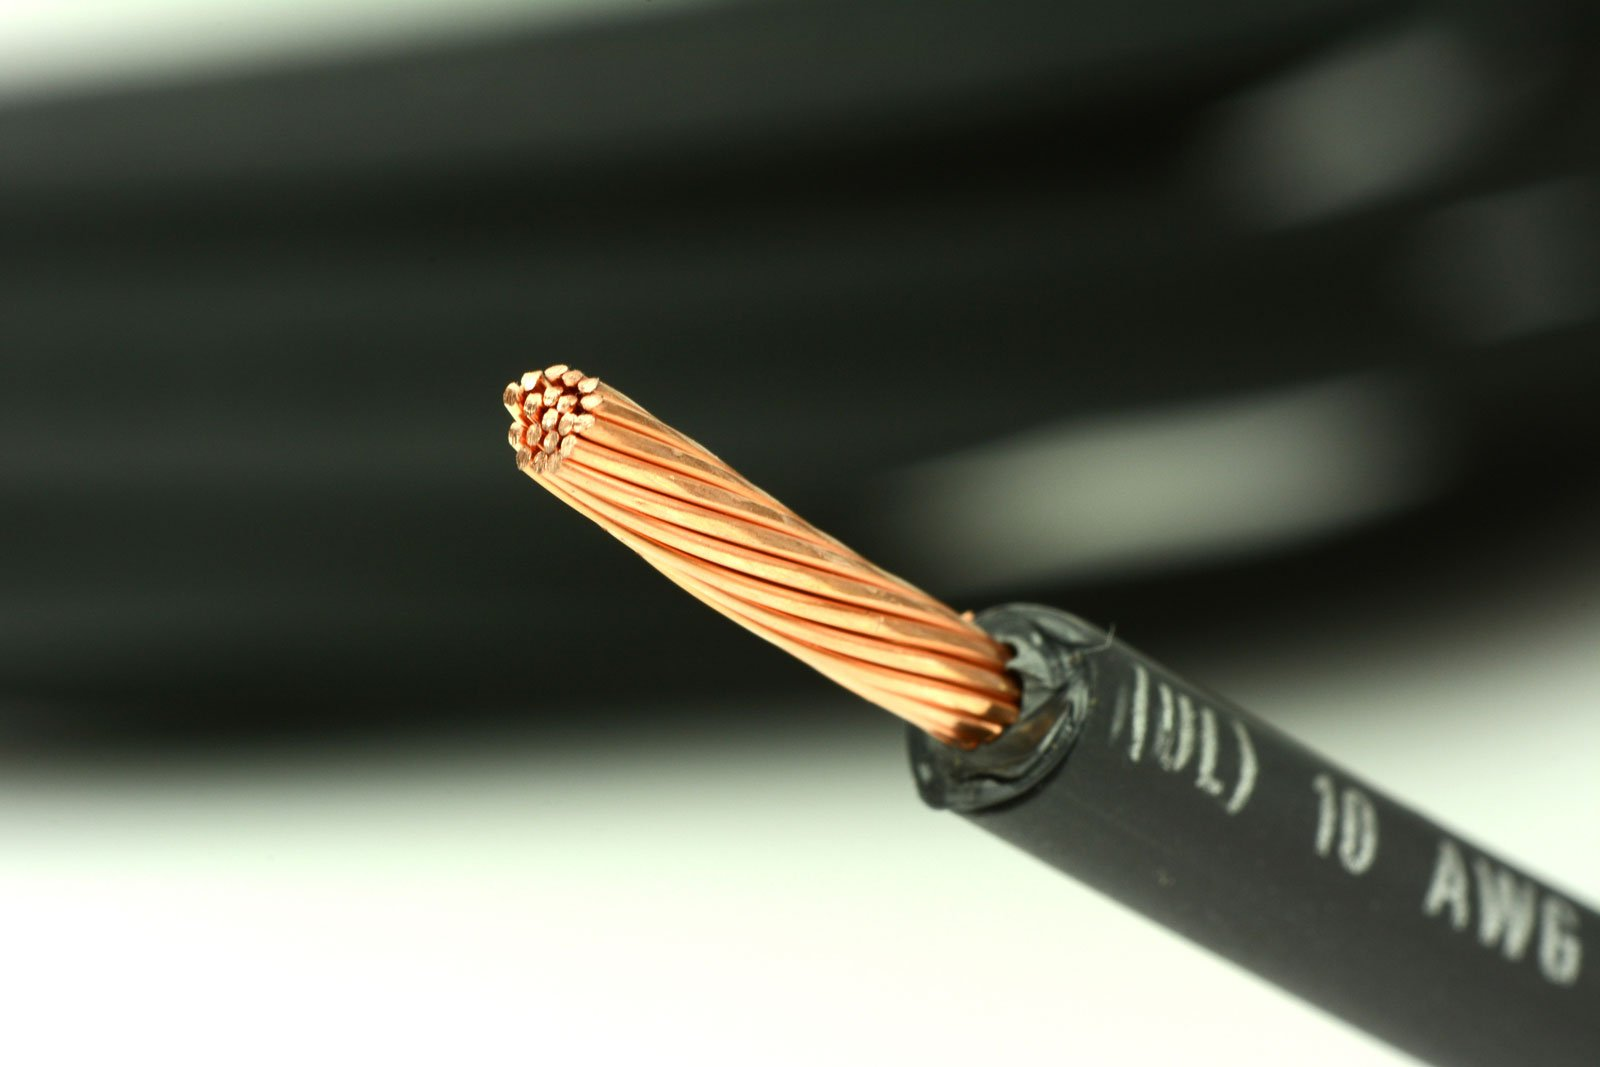 Temco 10 AWG Solar Panel Wire 100' Power Cable Black UL 4703 Copper Made in USA PV Gauge by Temco (Image #2)